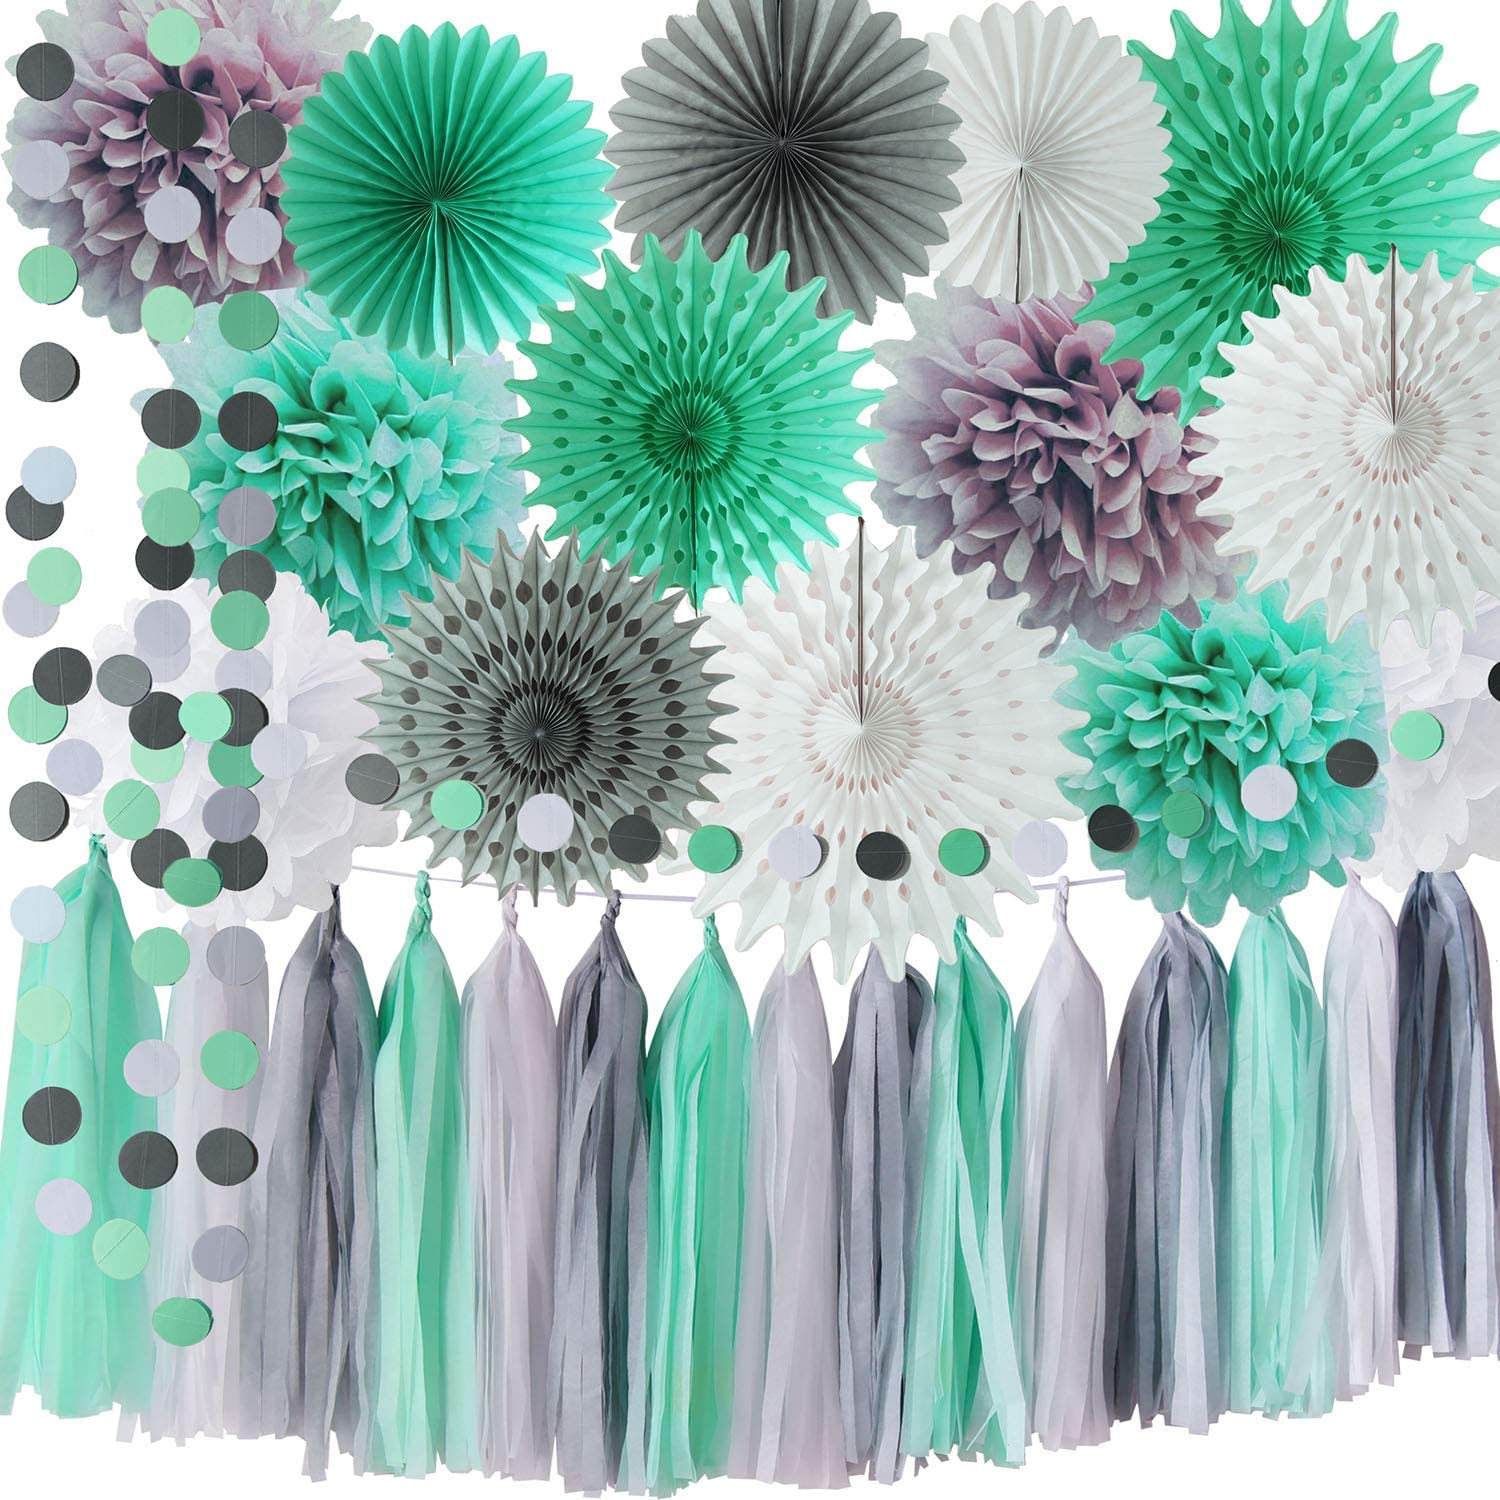 Mint Grey Baby Shower Decorations/Mint Grey White Elephant Baby Shower Supplies Tissue Paper Pom Pom Circle Garland Tassel Garland Mint Bridal Shower Decorations/Mint Grey Birthday Party Decor